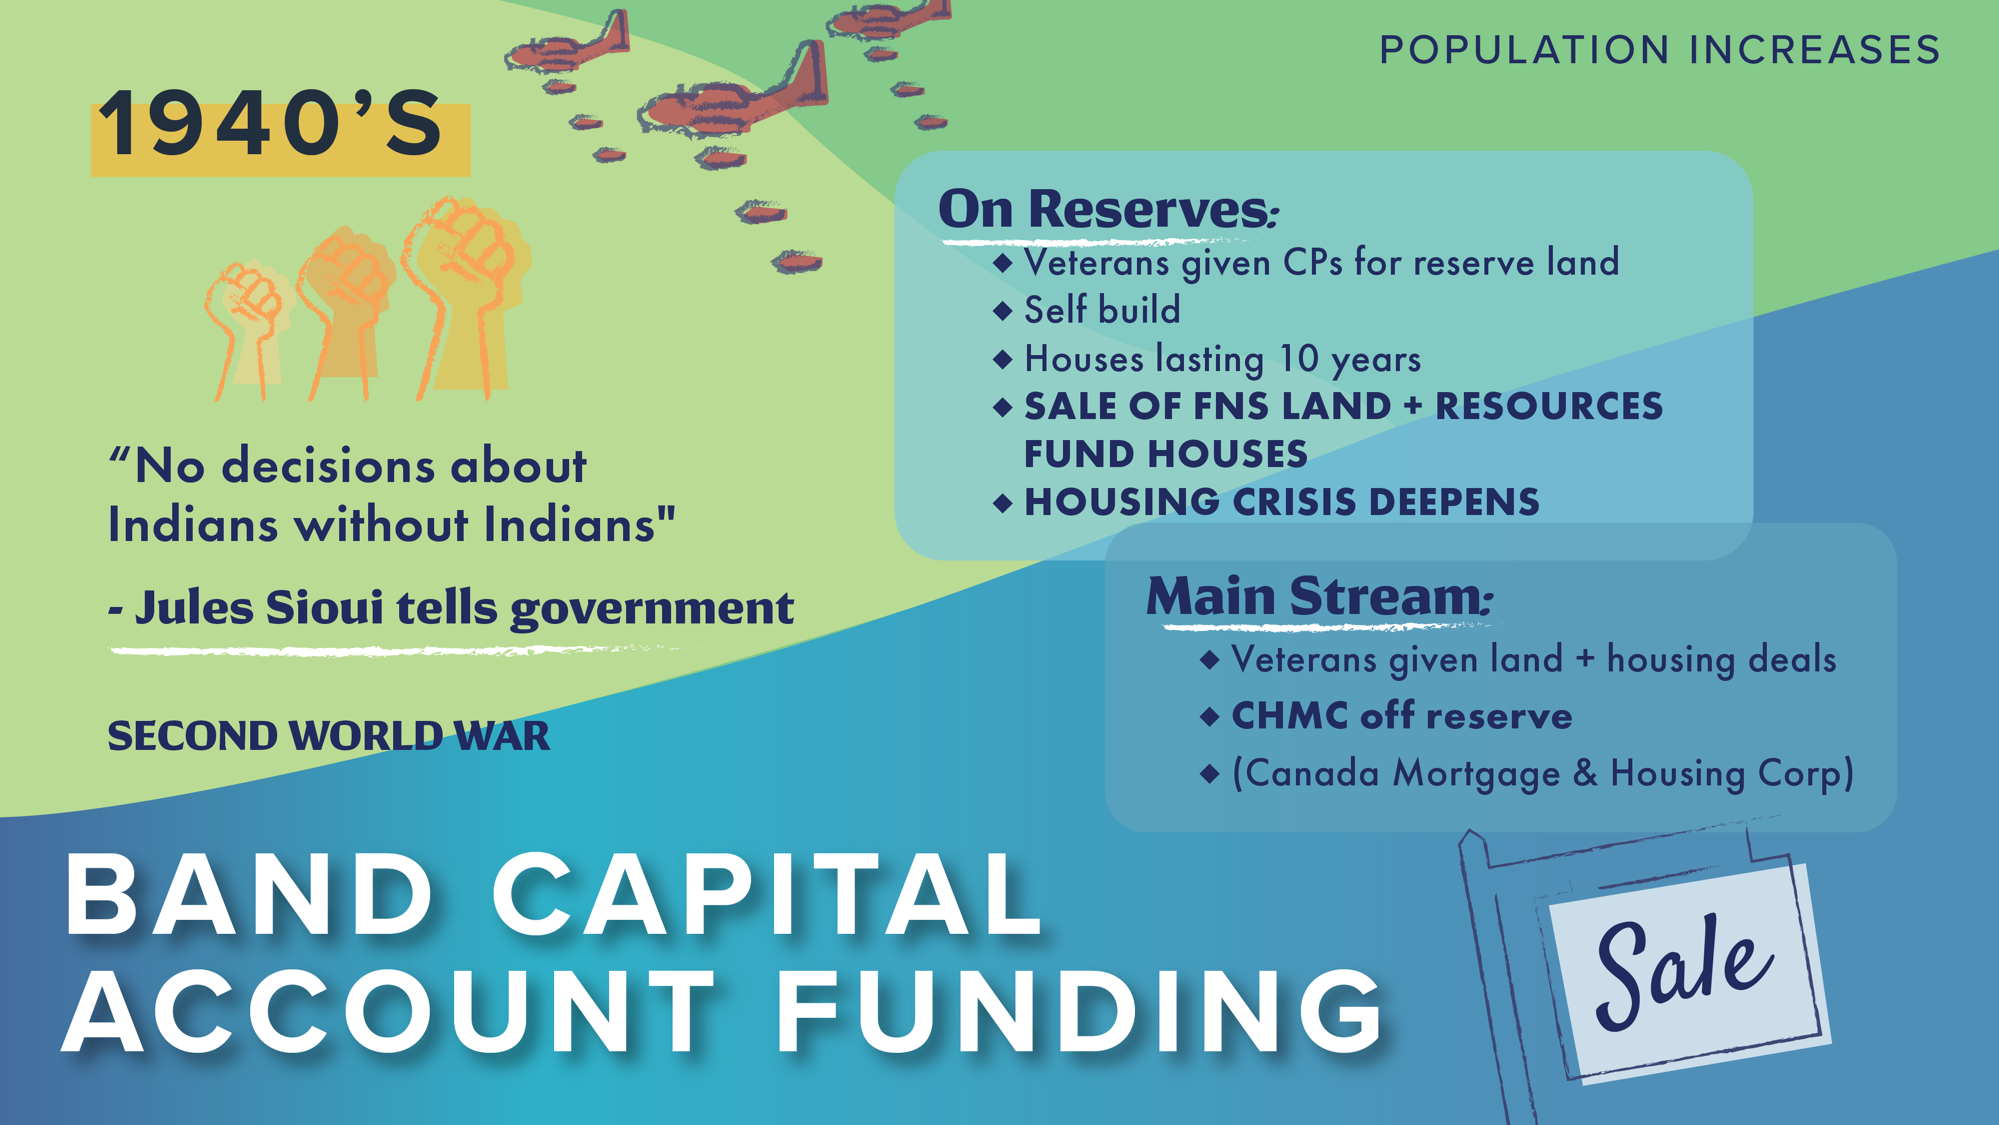 Band Capital Account Funding